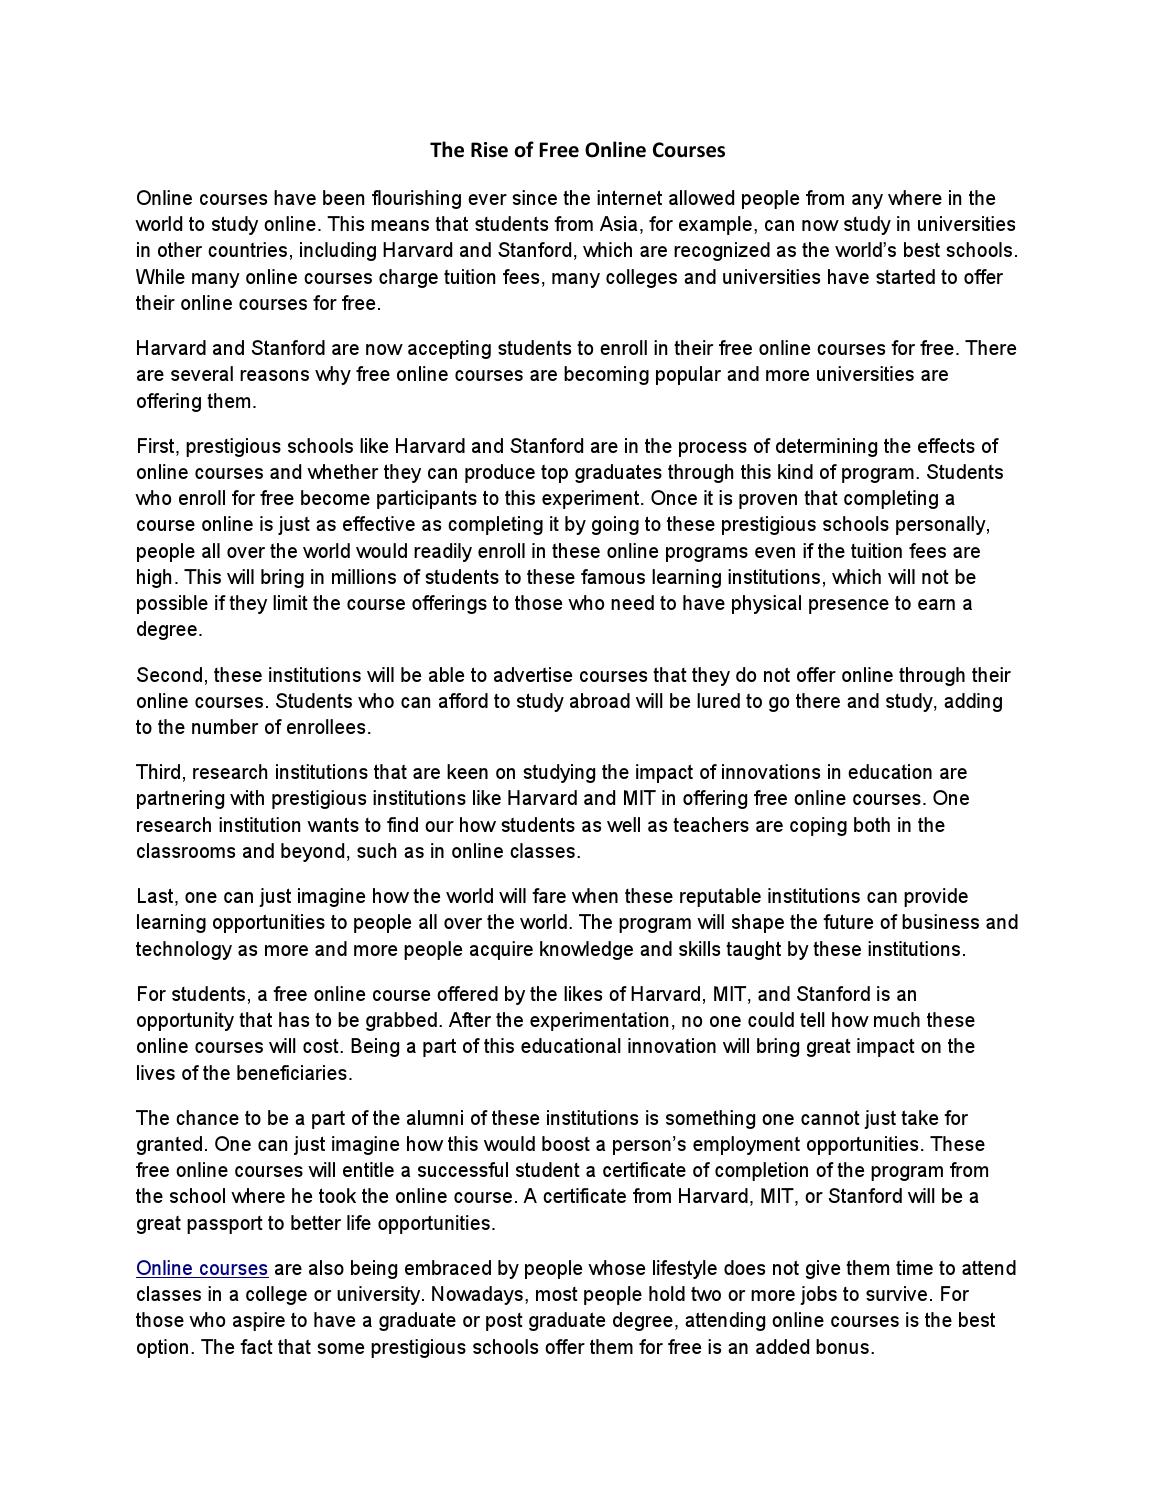 sap appeal letter the rise of free courses by acadsoc issuu 24726 | page 1